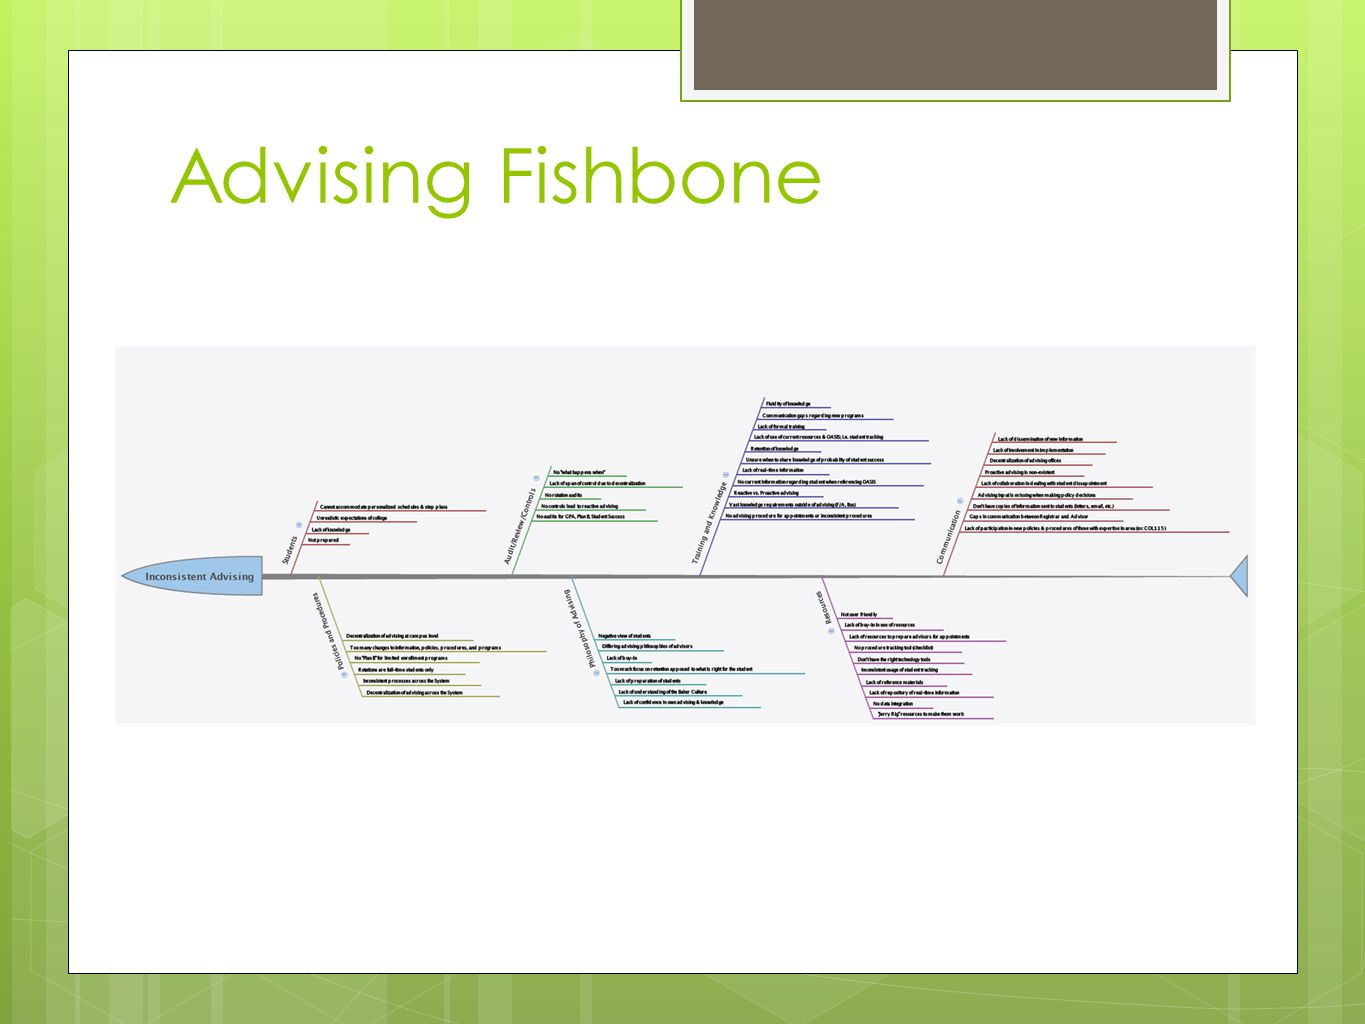 Advising Fishbone